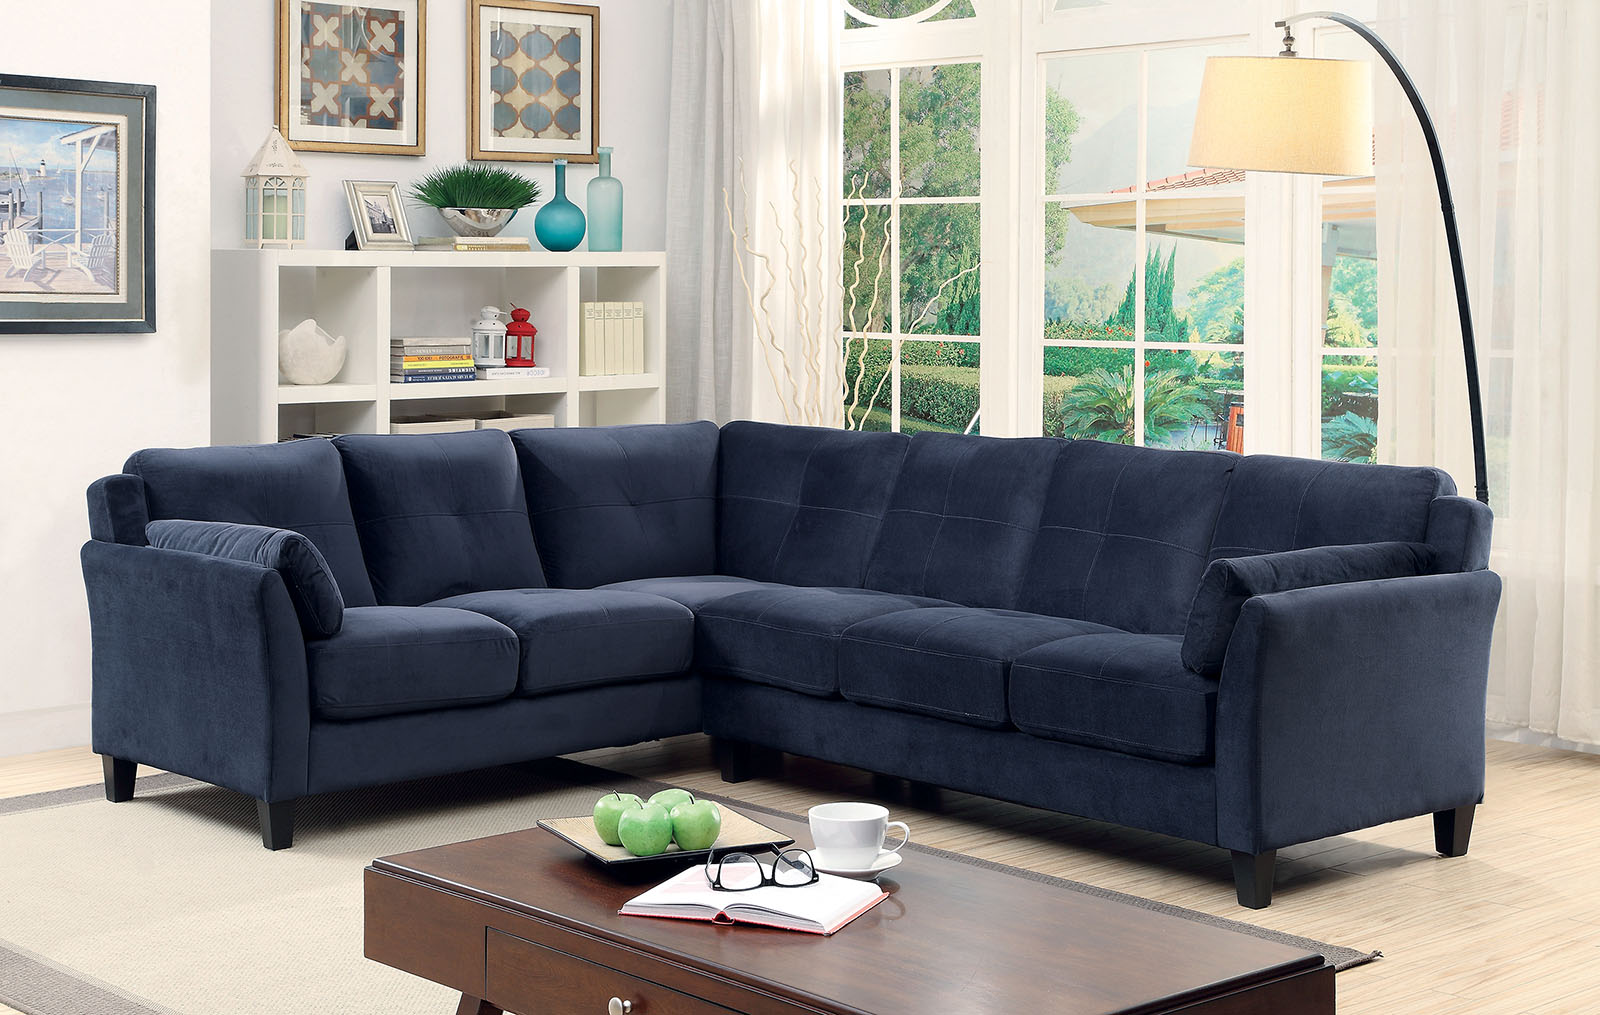 queen sleeper sofa sectionals wicker sets 6368nv nvay blue contemporary sectional furniture of ...